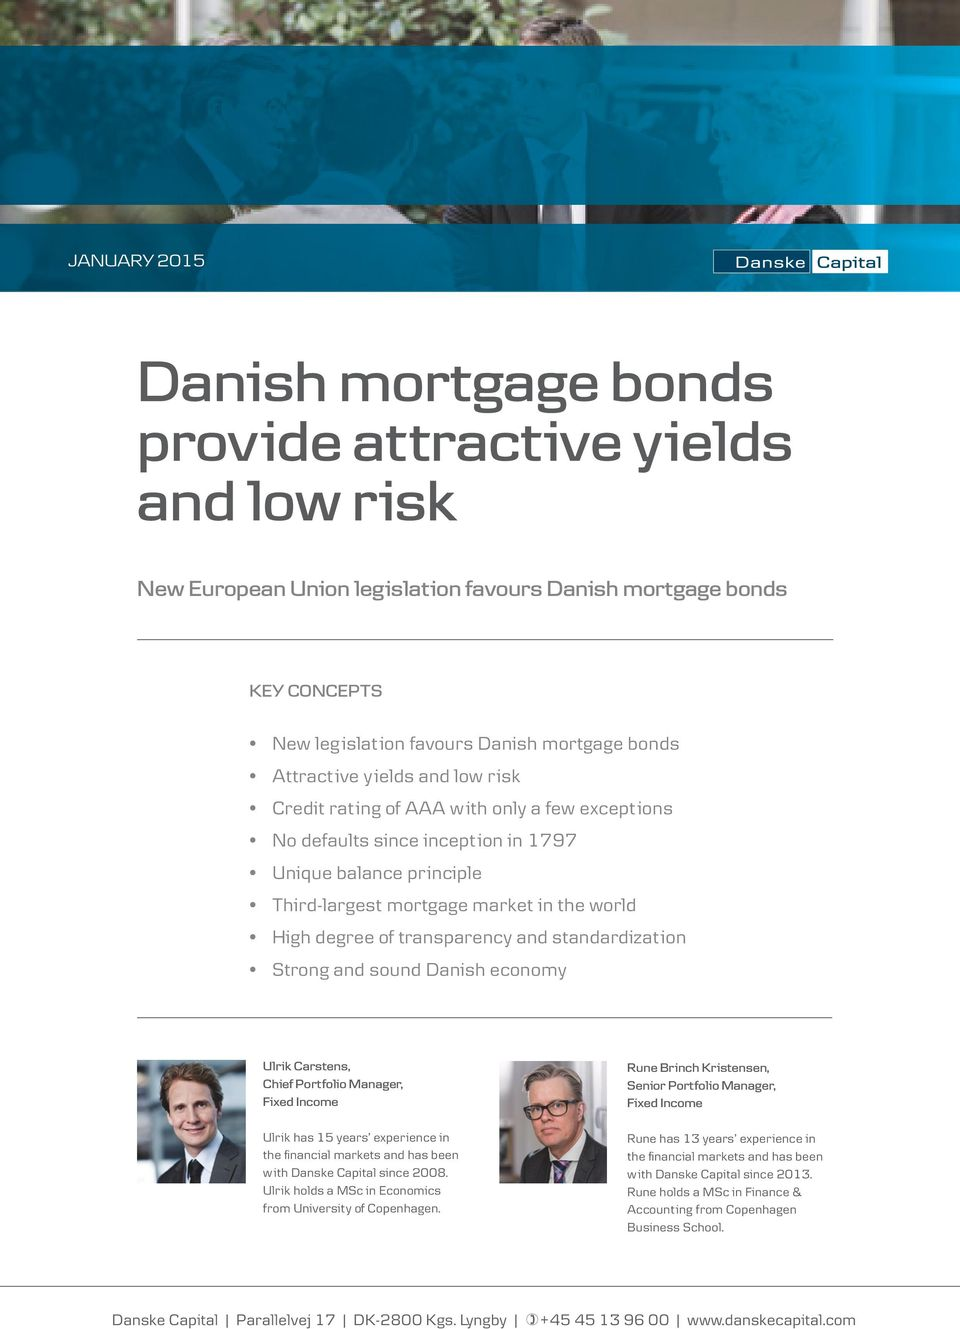 transparency and standardization Strong and sound Danish economy Ulrik Carstens, Chief Portfolio Manager, Fixed Income Ulrik has 15 years experience in the financial markets and has been with Danske